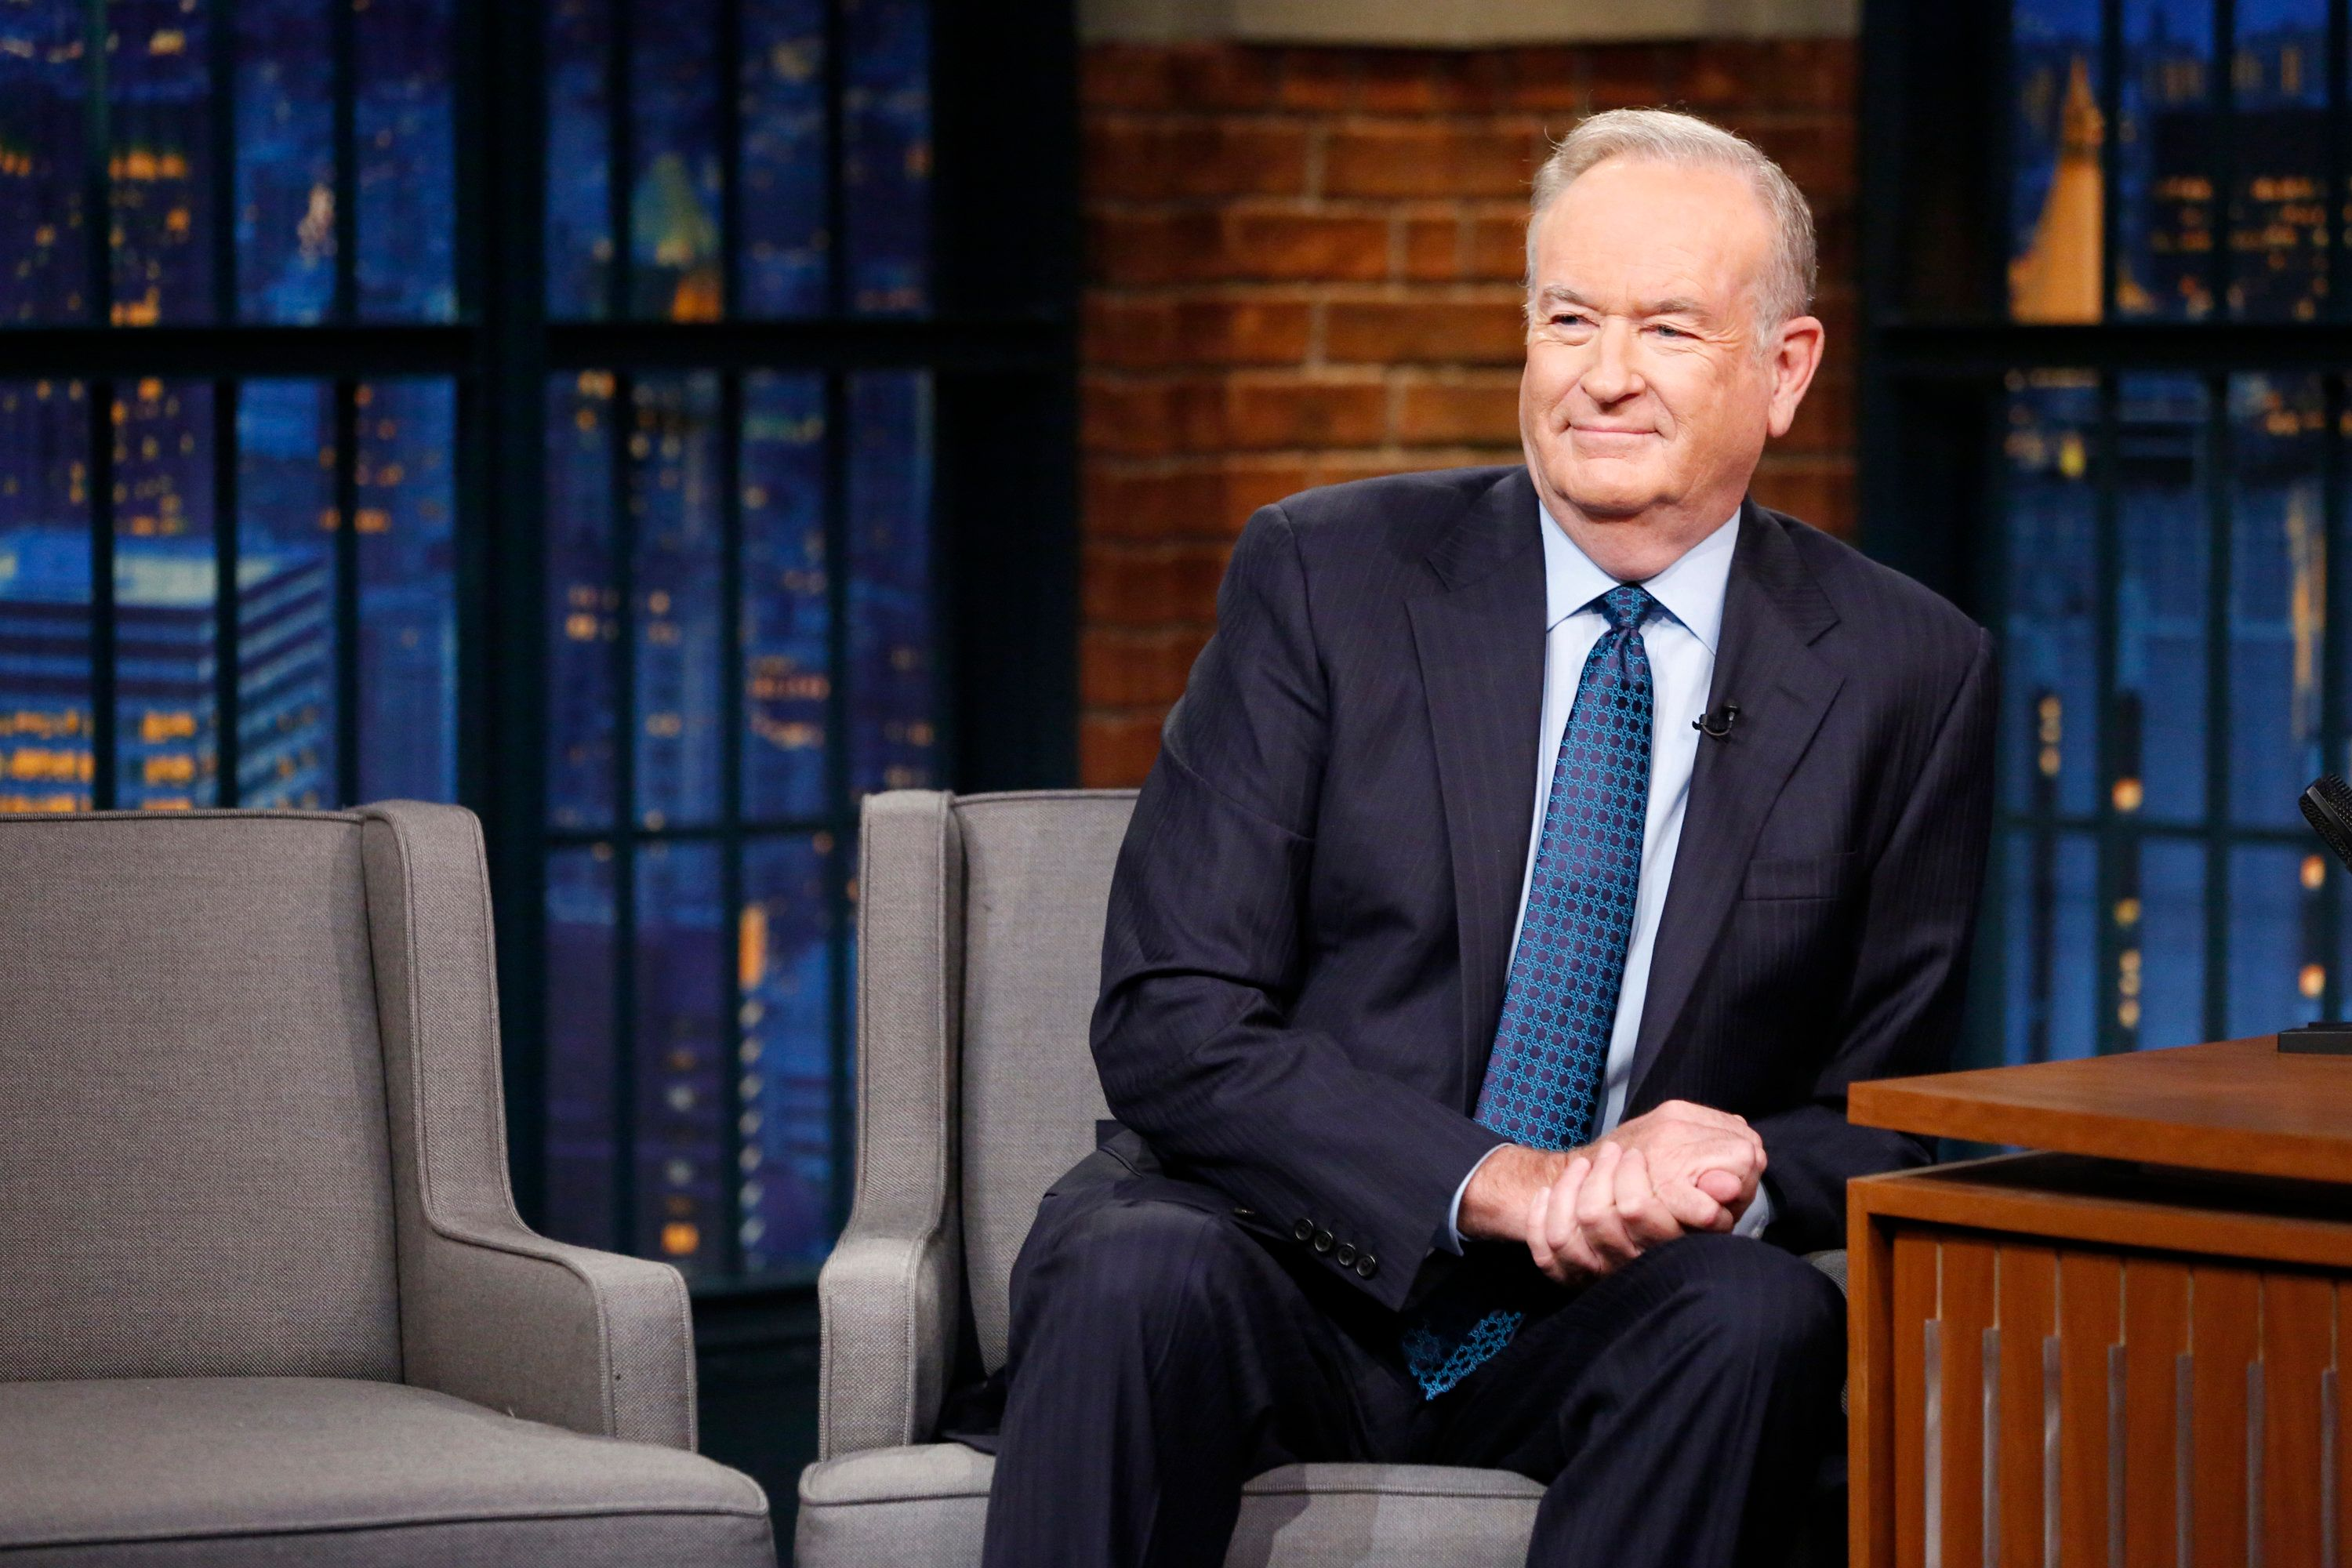 LATE NIGHT WITH SETH MEYERS -- Episode 392 -- Pictured: Political commentator, Bill O'Reilly, during an interview on July 13, 2016 -- (Photo by: Lloyd Bishop/NBC/NBCU Photo Bank via Getty Images)